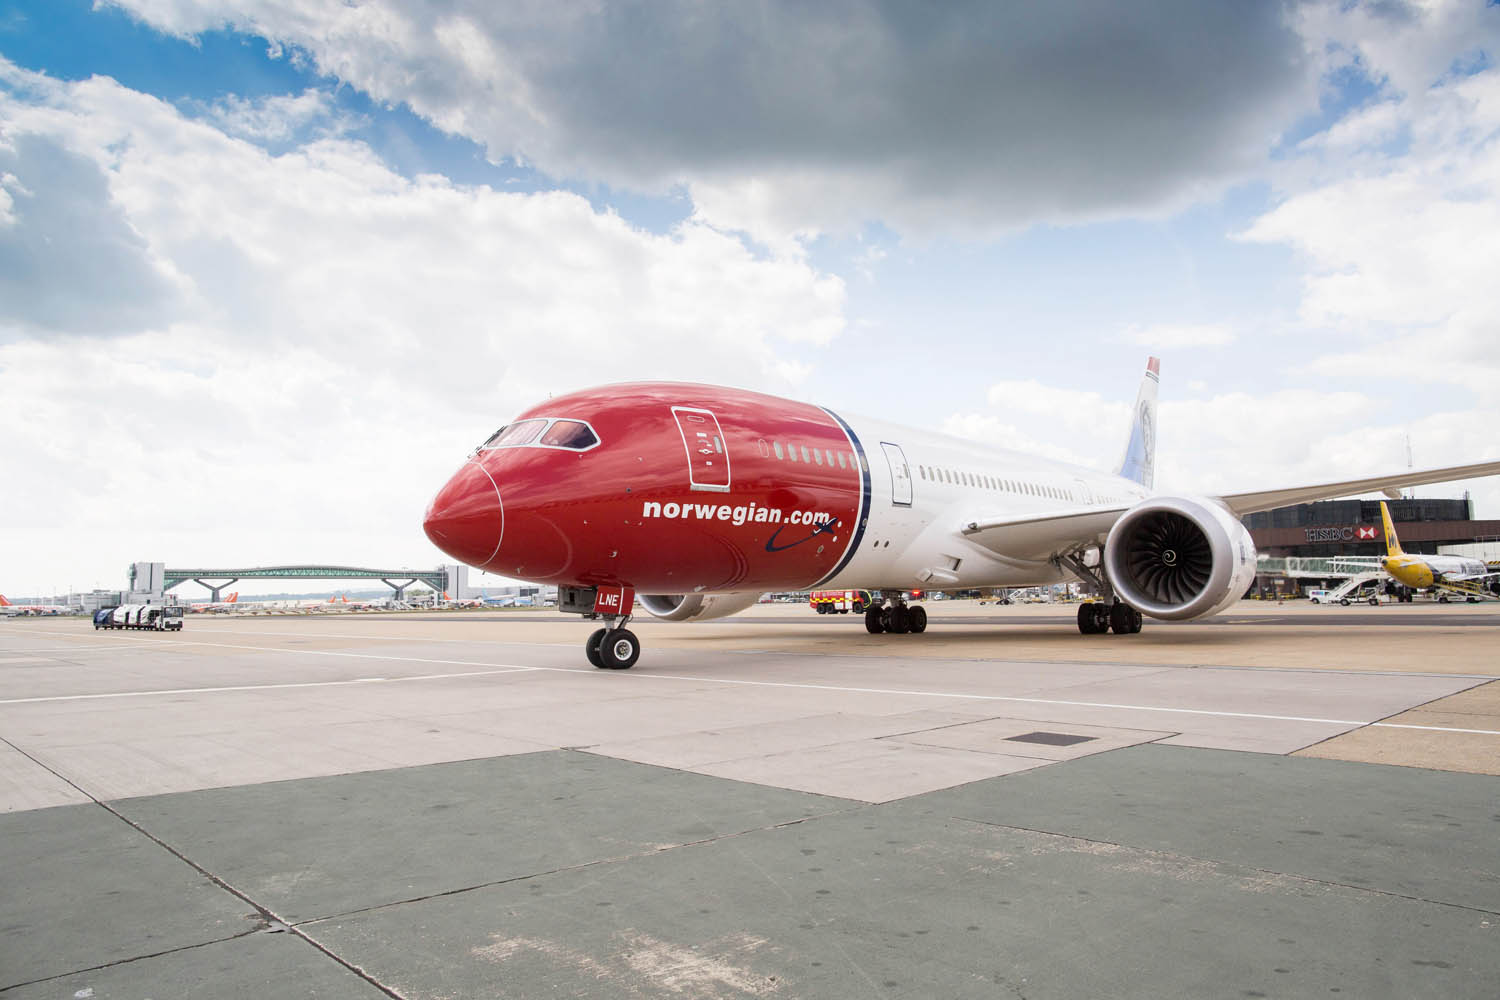 US unions clamp down on new Norwegian airline transatlantic bid